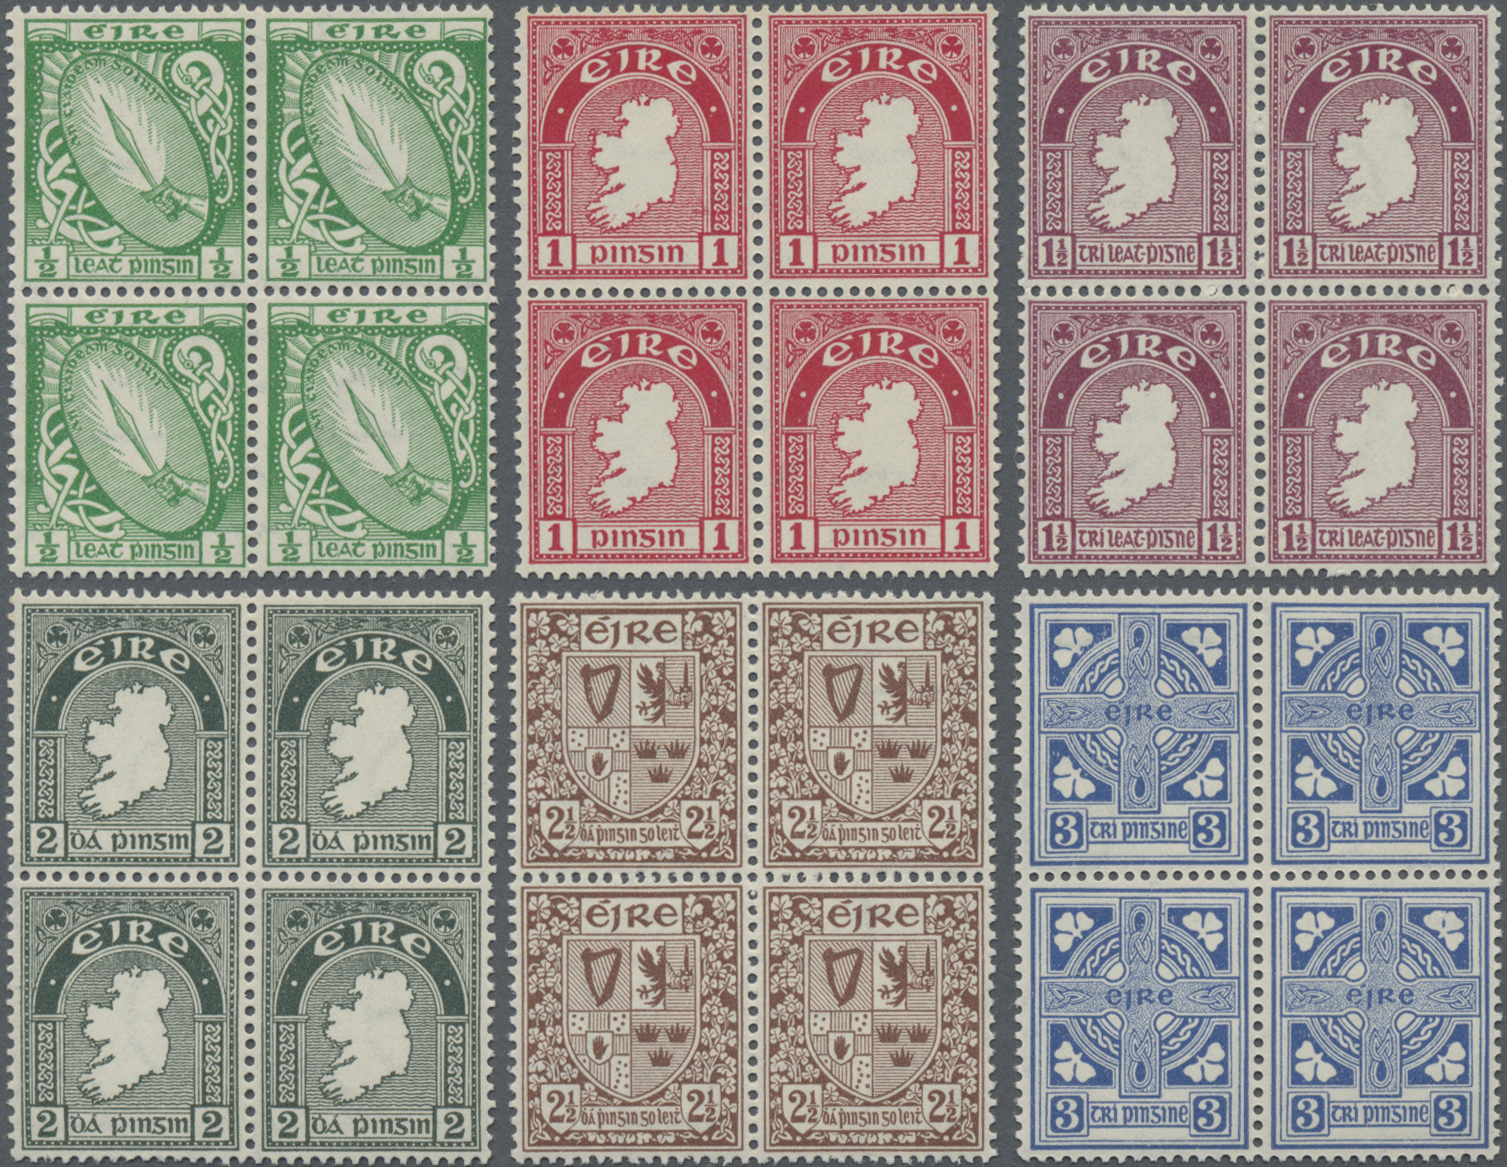 Lot 11665 - irland  -  Auktionshaus Christoph Gärtner GmbH & Co. KG Sale #46 Single lots Asia, Thematics, Overseas, Europe …